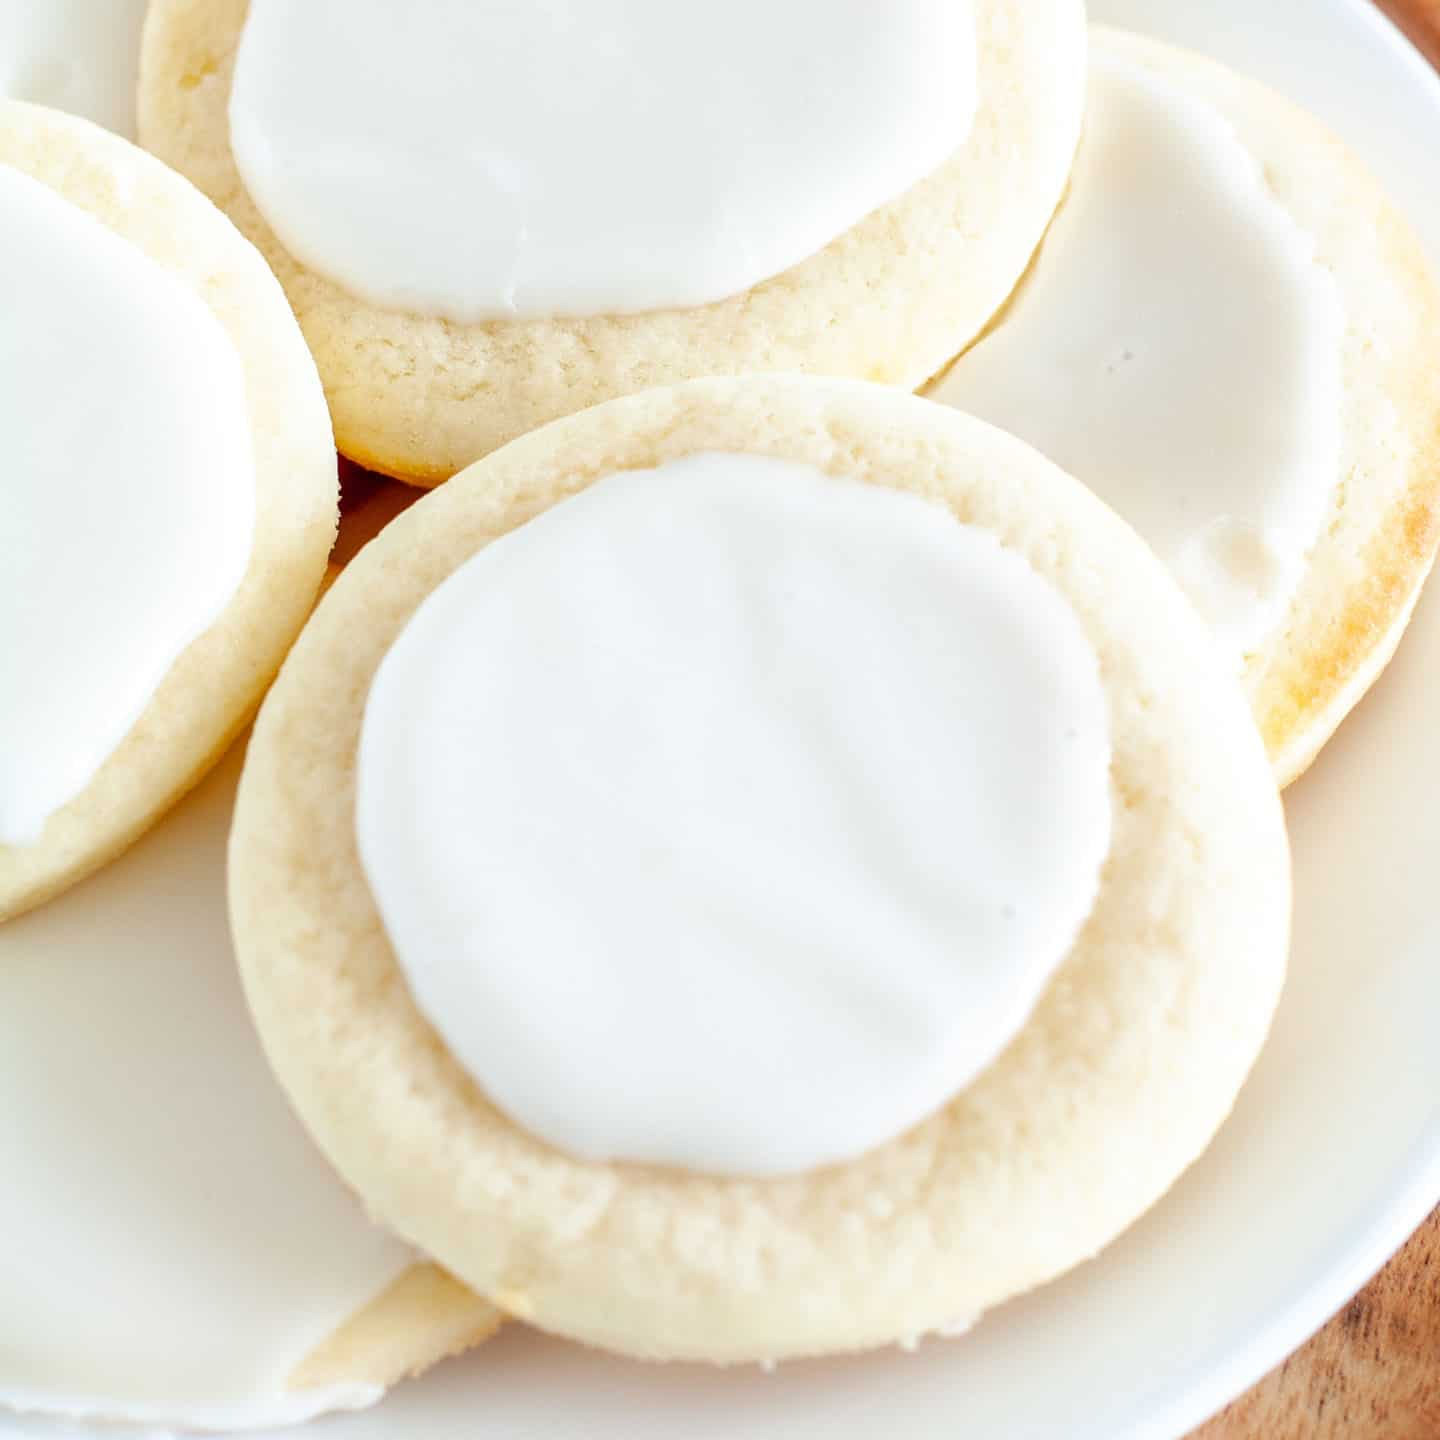 Cookies with frosting on a plate